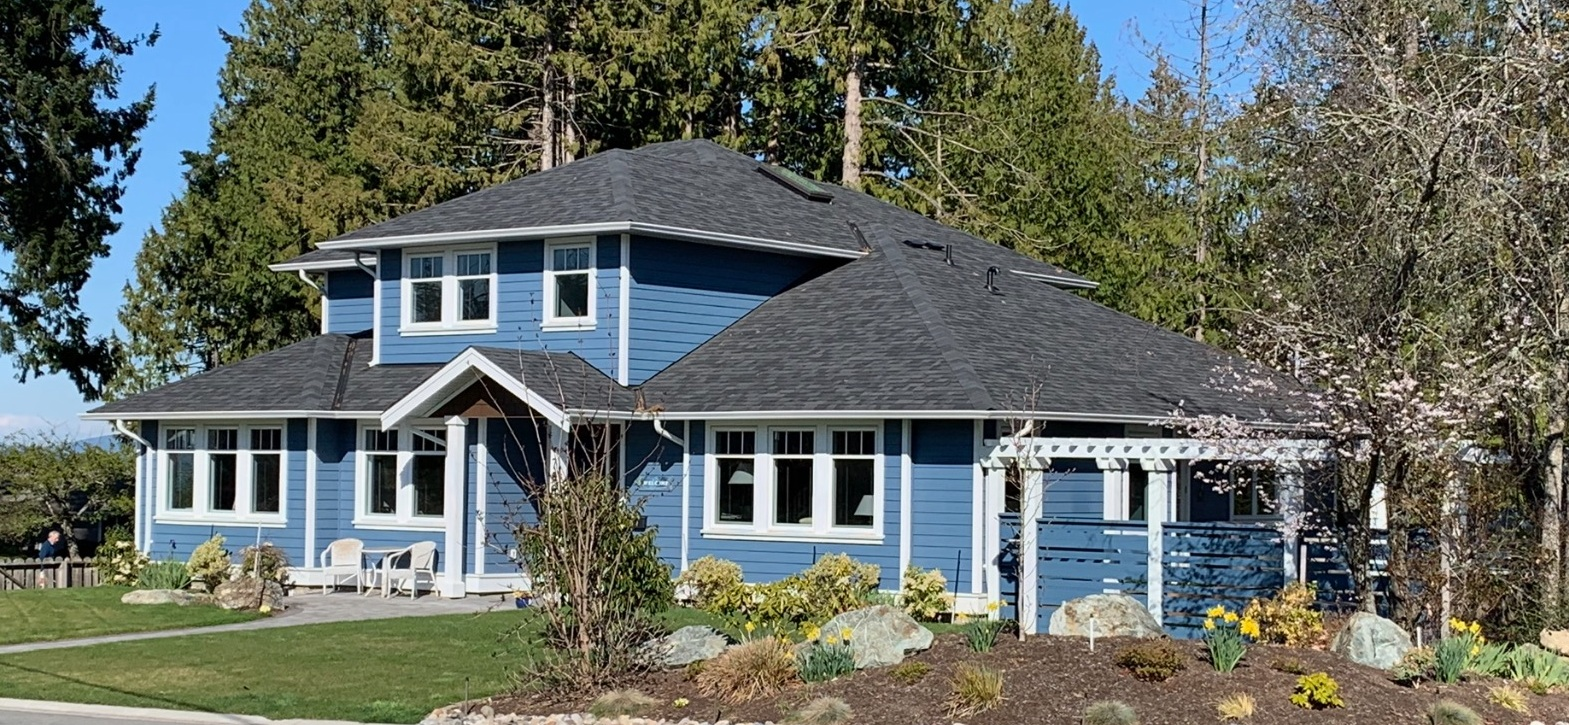 About us - Find out more about Oak Bay Construction in Victoria, BC.